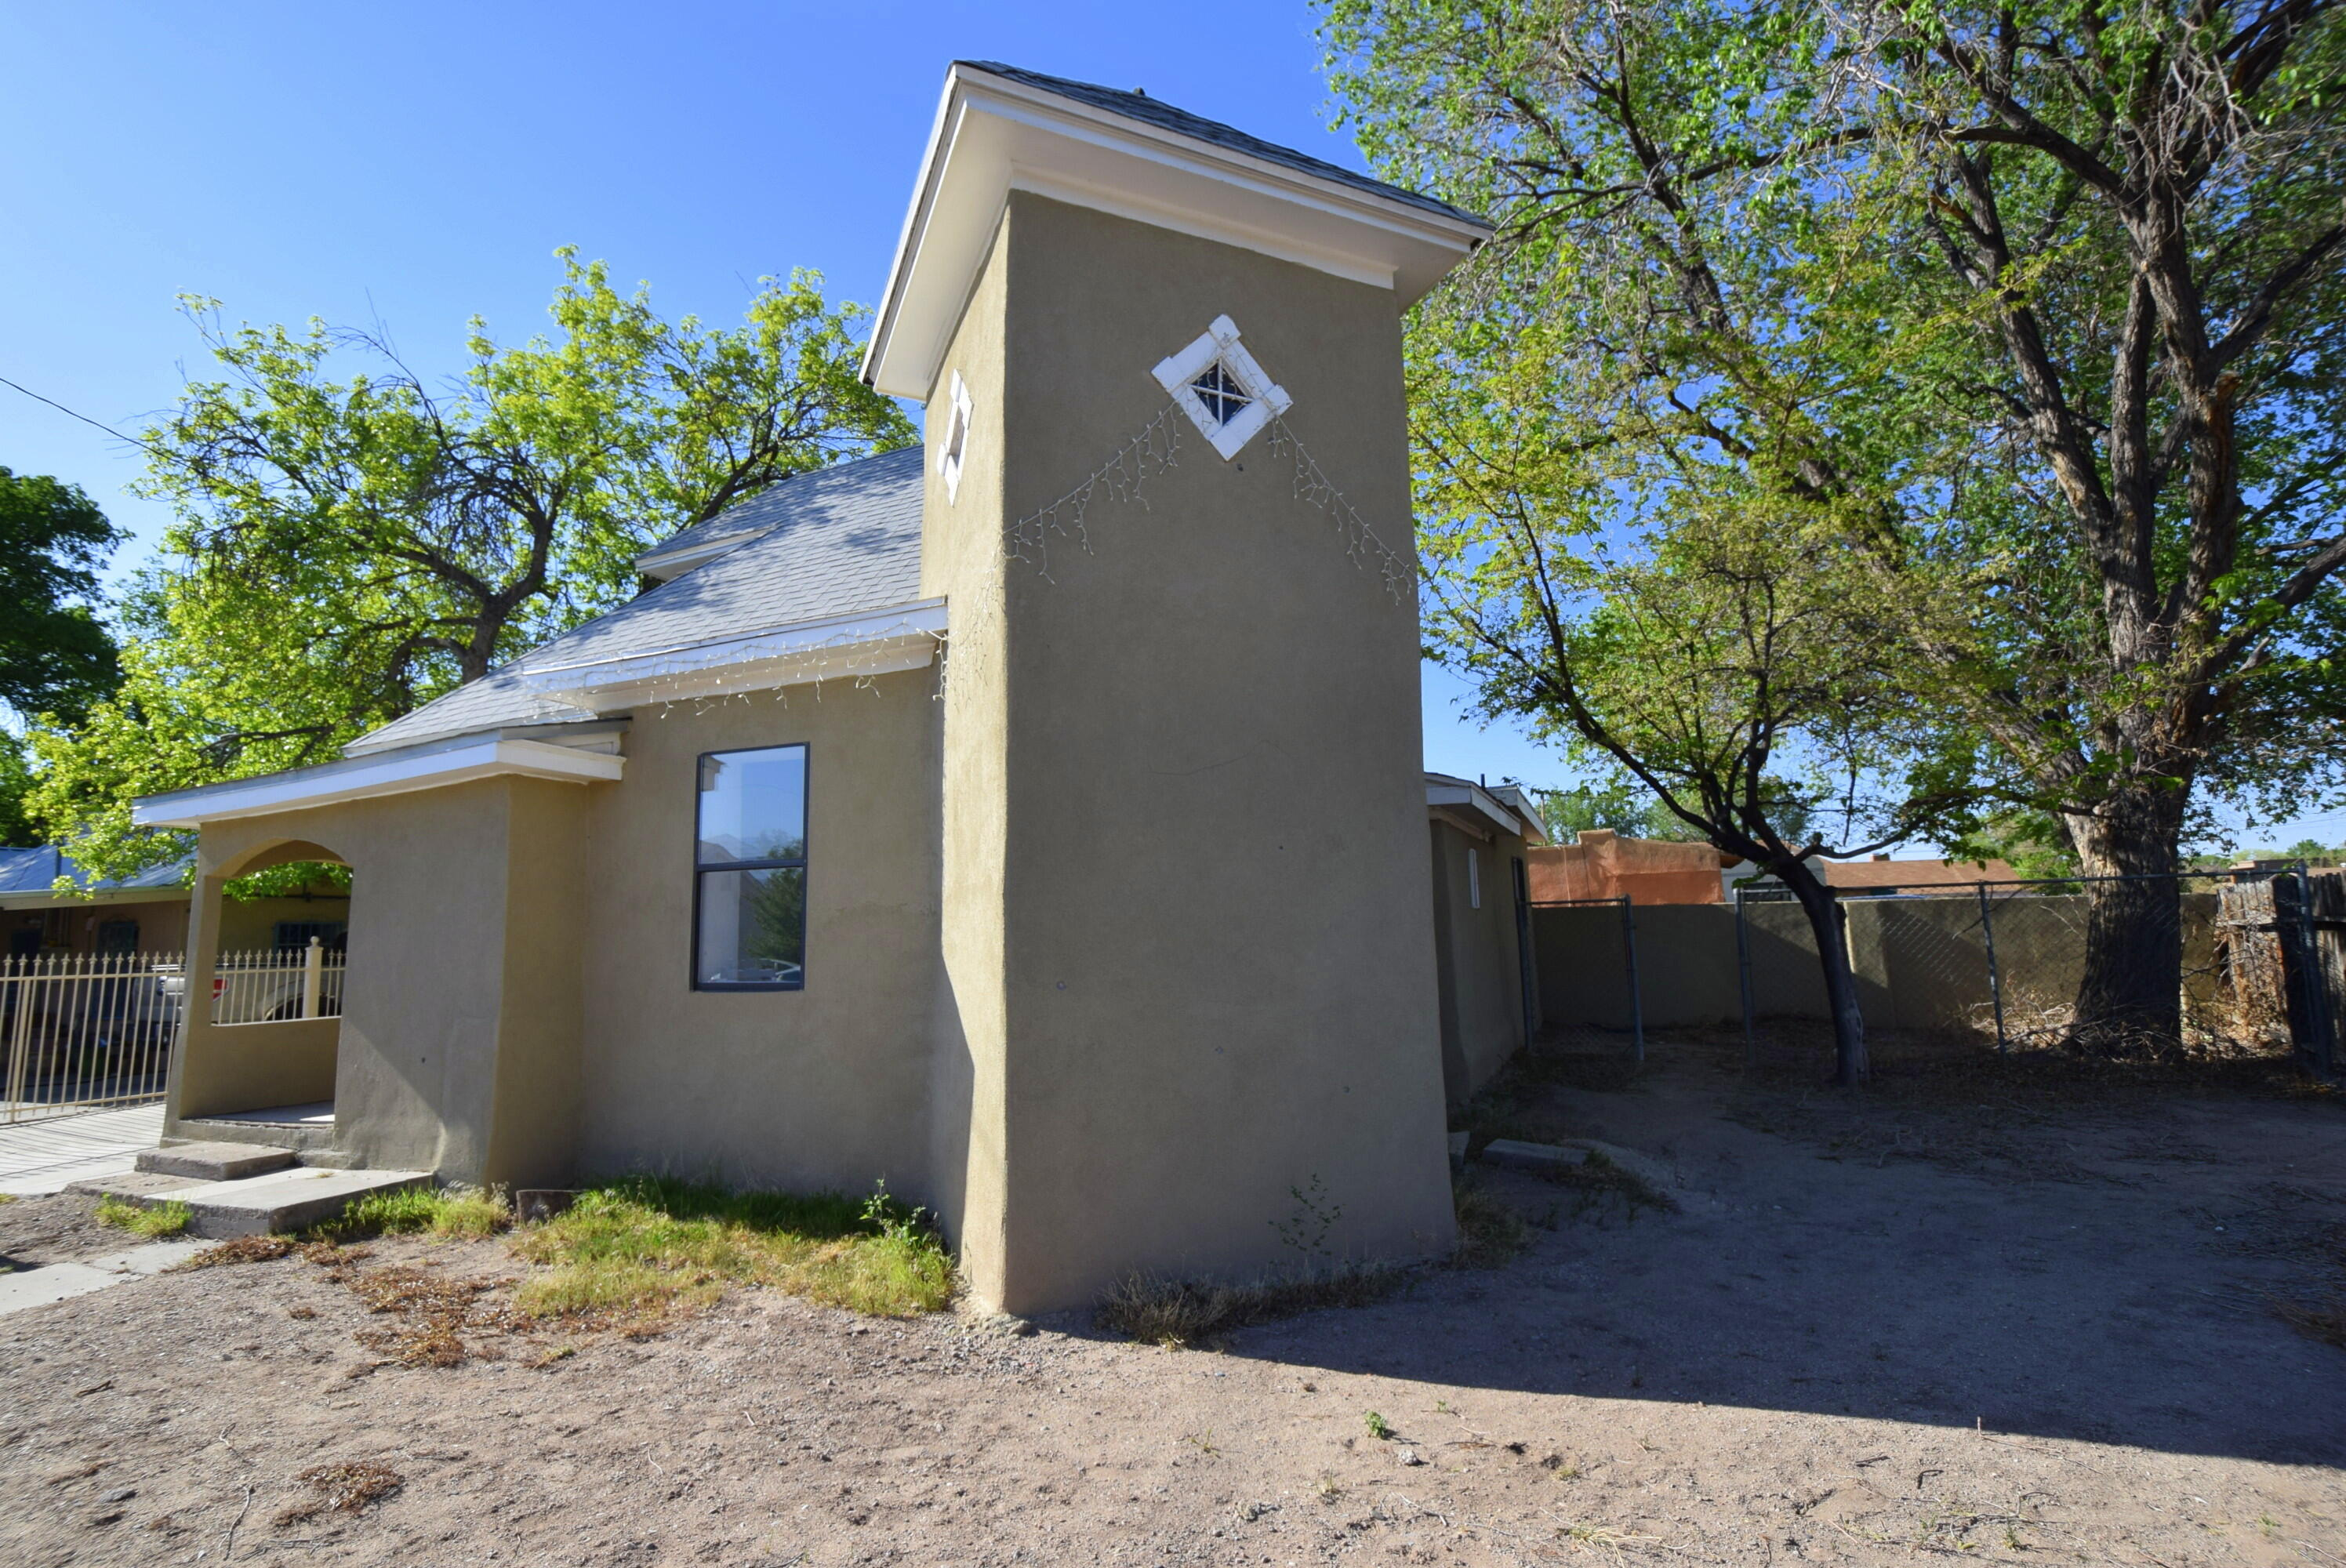 This unique property reflects the style and grandeur of the Barelas area.  Built during the heyday of the Railroad discovering Albuquerque and the village growing into a city.  It reflects the creativity of the time with it's adobe style and open and welcoming areas.  Freshly painted, flooring repaired and building will be re-stuccoed.  There is a small Casa in back where your friends can stay as the enjoy all the fun the city has to offer.  Walking distance to the National Hispanic Cultural Center, historic Barelas Coffee House and all the Downtown recreation.  Easy access to bus and transportation hubs with main roads far enough so you don't hear the traffic but can get to anywhere quickly. You know - Albuquerque has more FUN days per year than any other city in the civilized world!